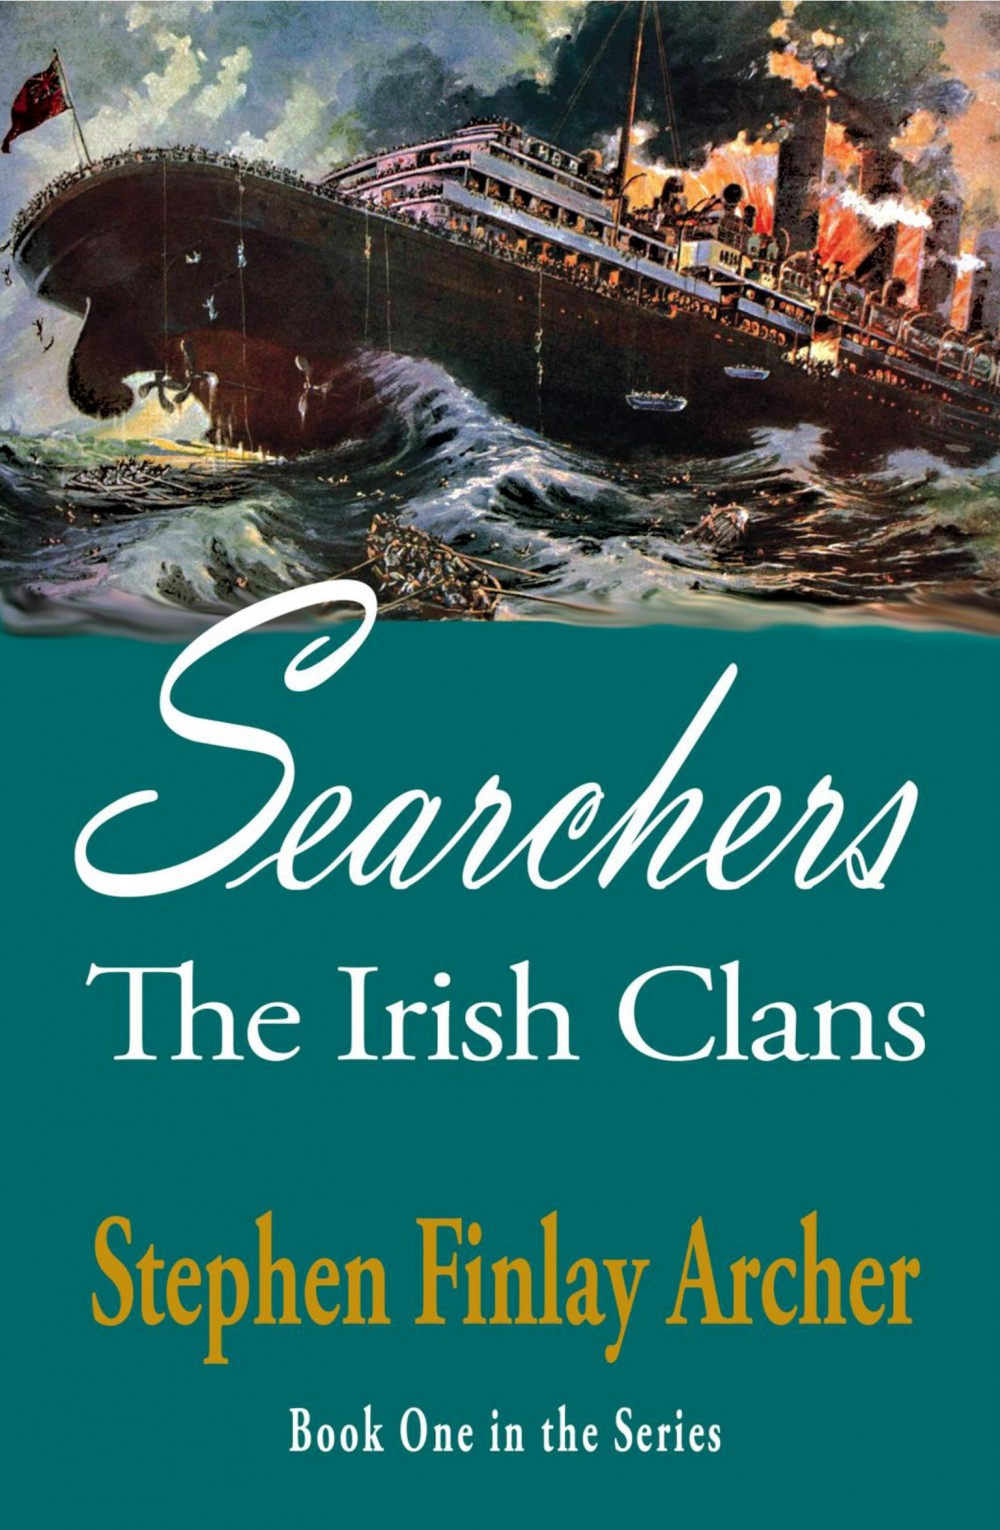 The Irish Clans, Book One: Searchers